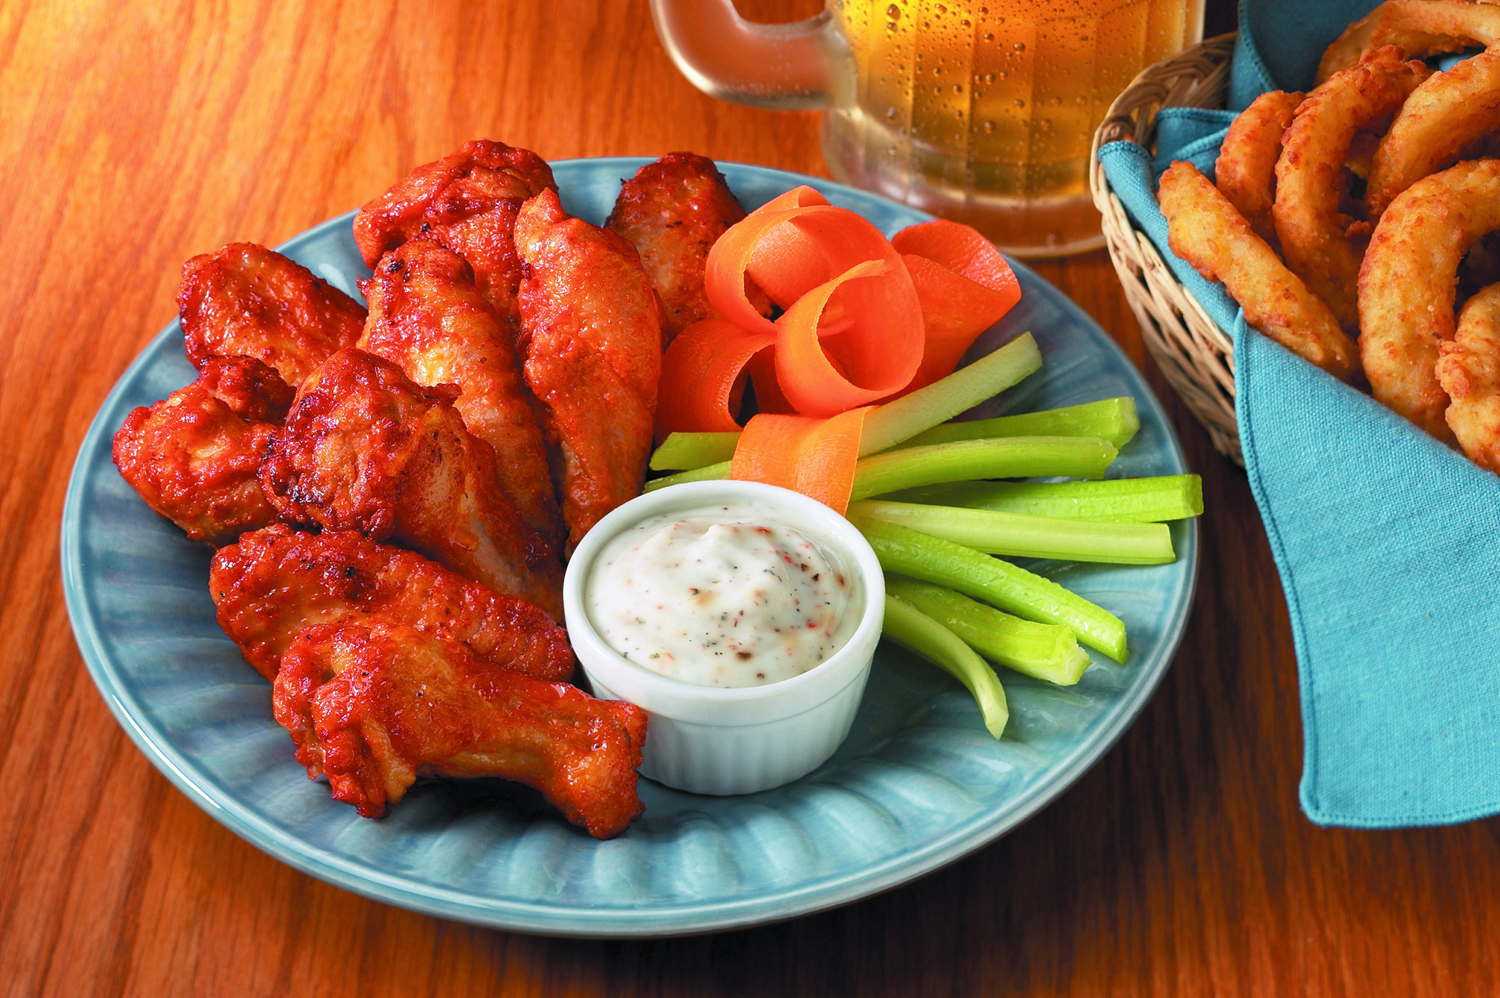 Chicken wings still a favorite for Super Bowl viewers; Americans to eat a record 1.4 billion during 2020 game - fox